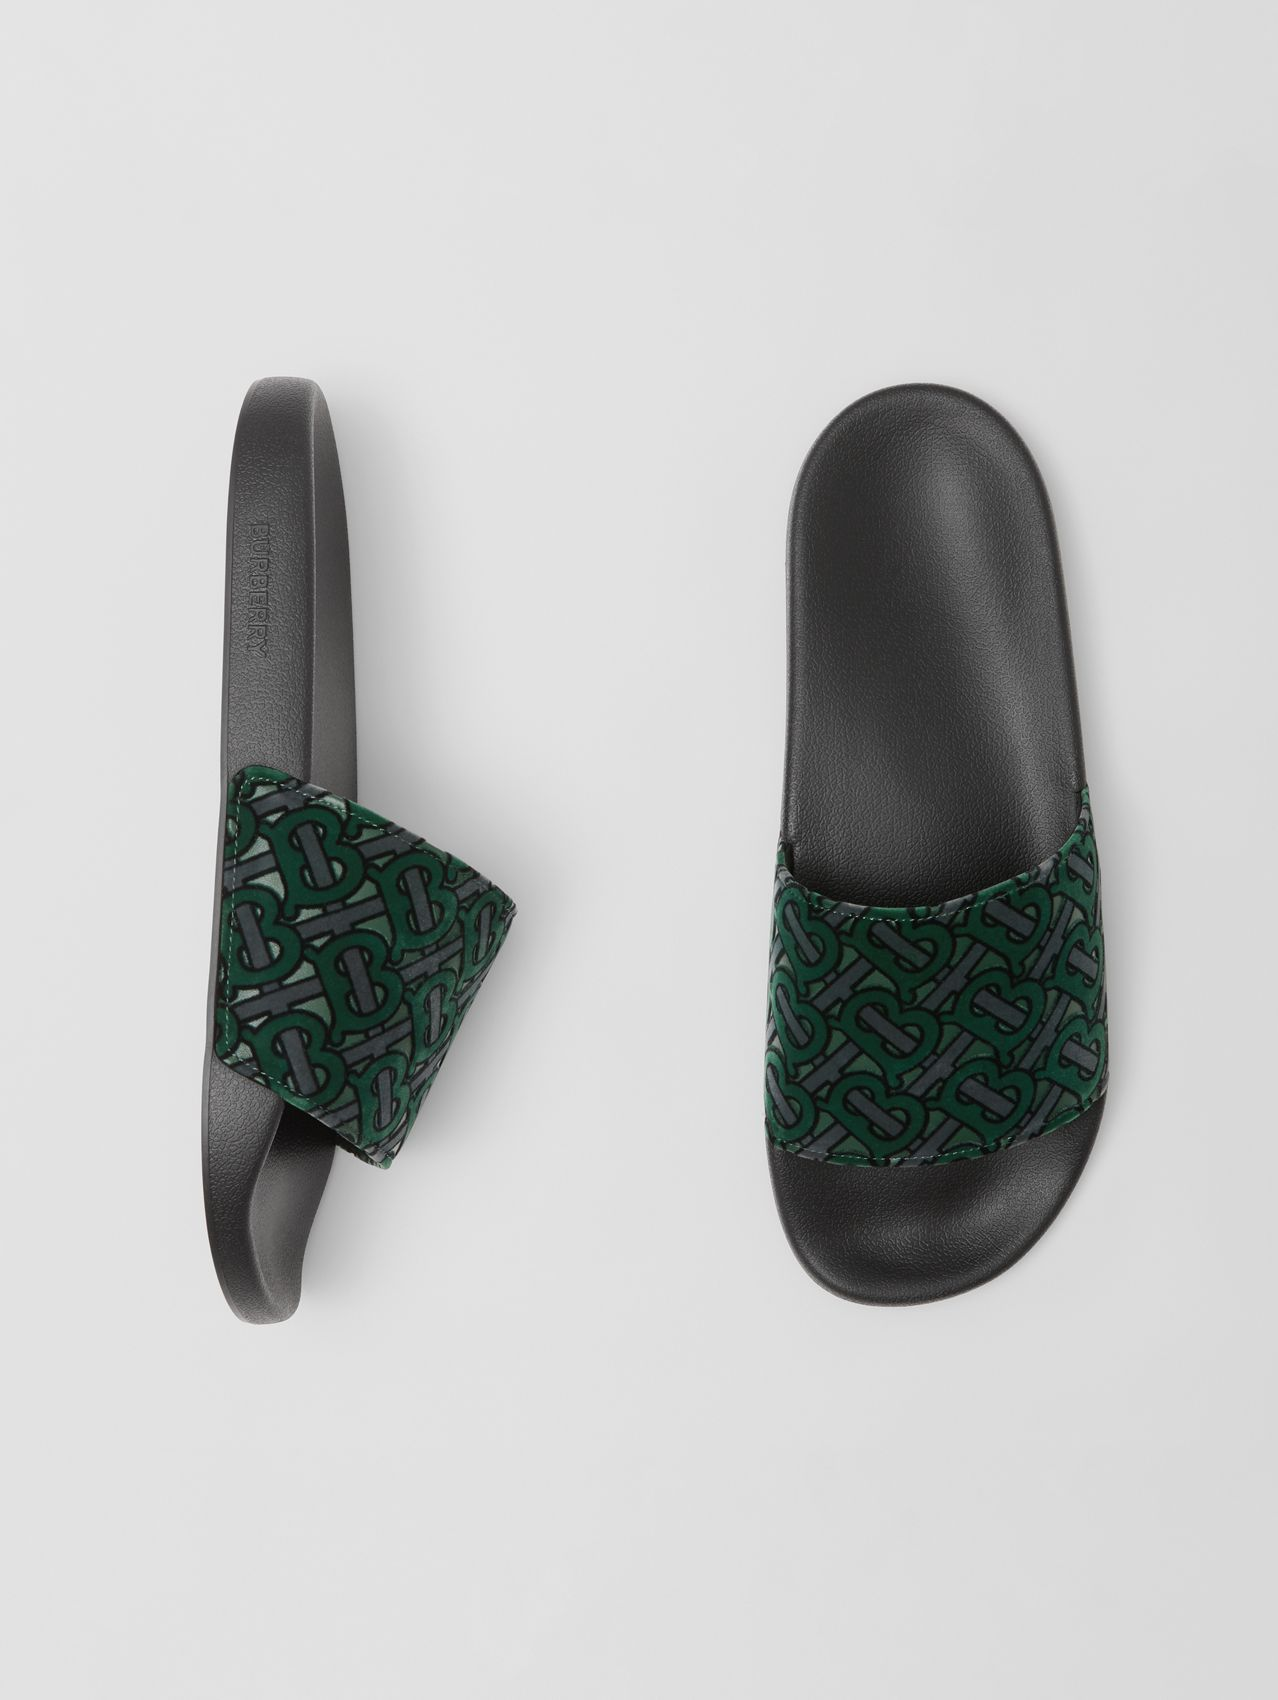 Monogram Flocked Leather Slides in Dark Forest Green